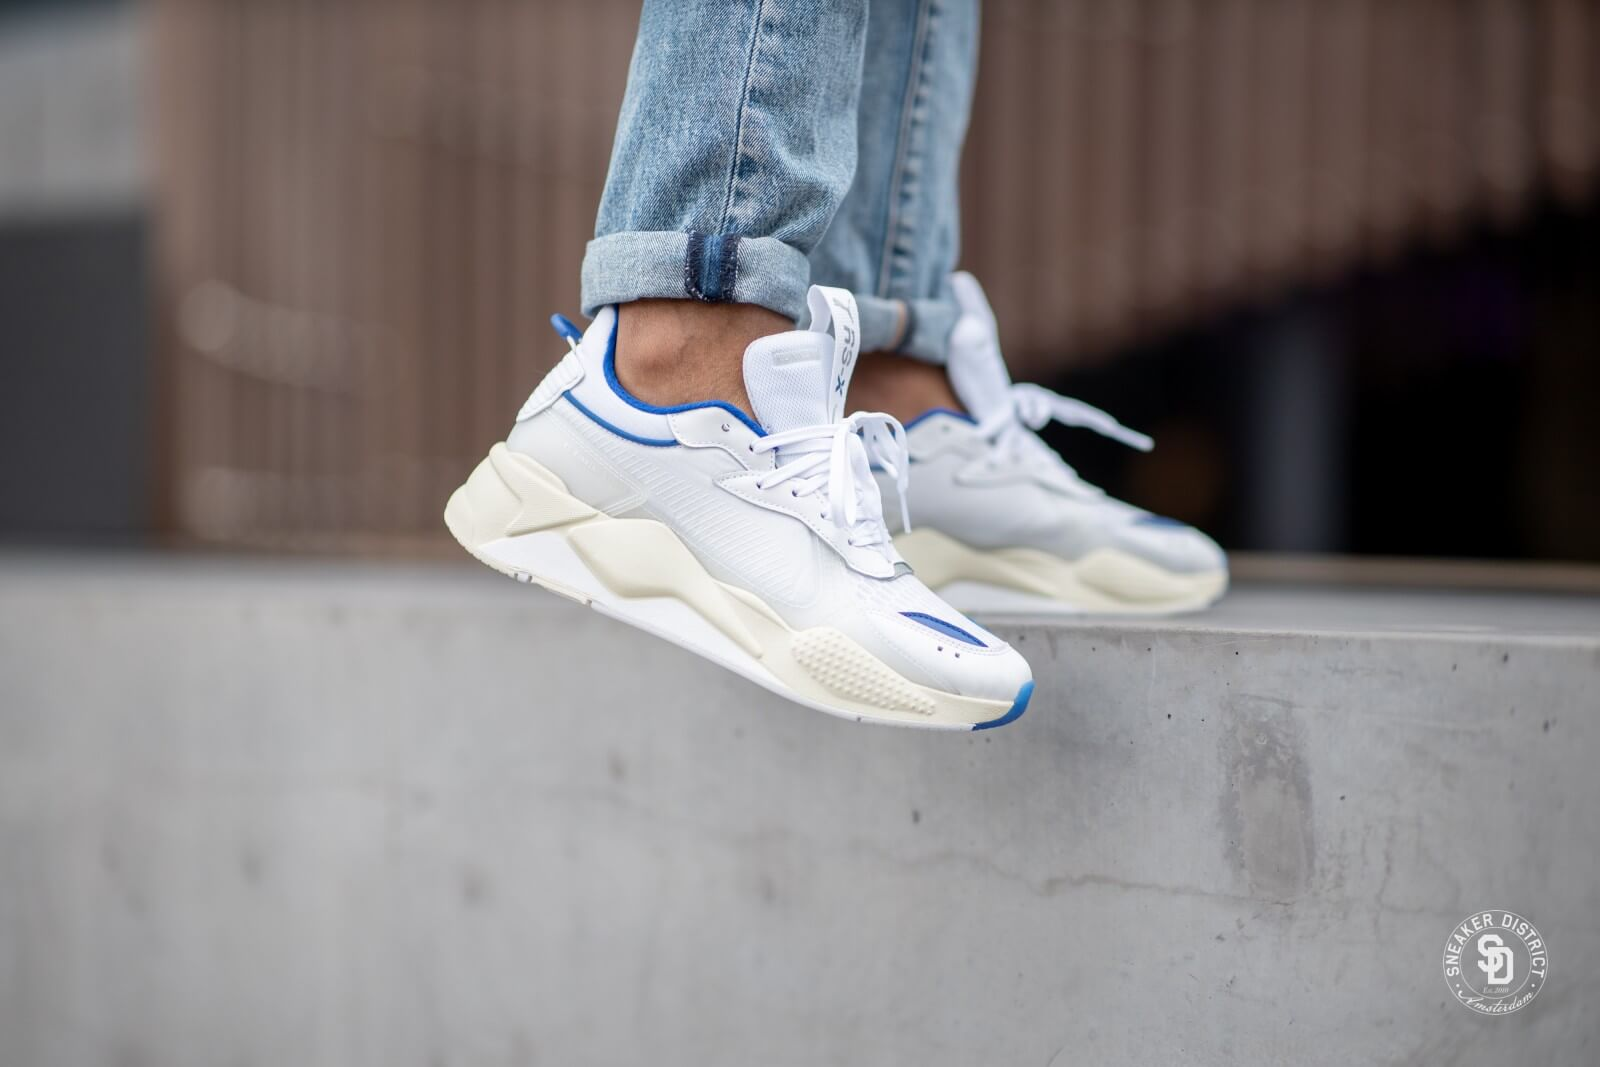 Puma RS-X Tech Puma White/Whisper White - 369329-03